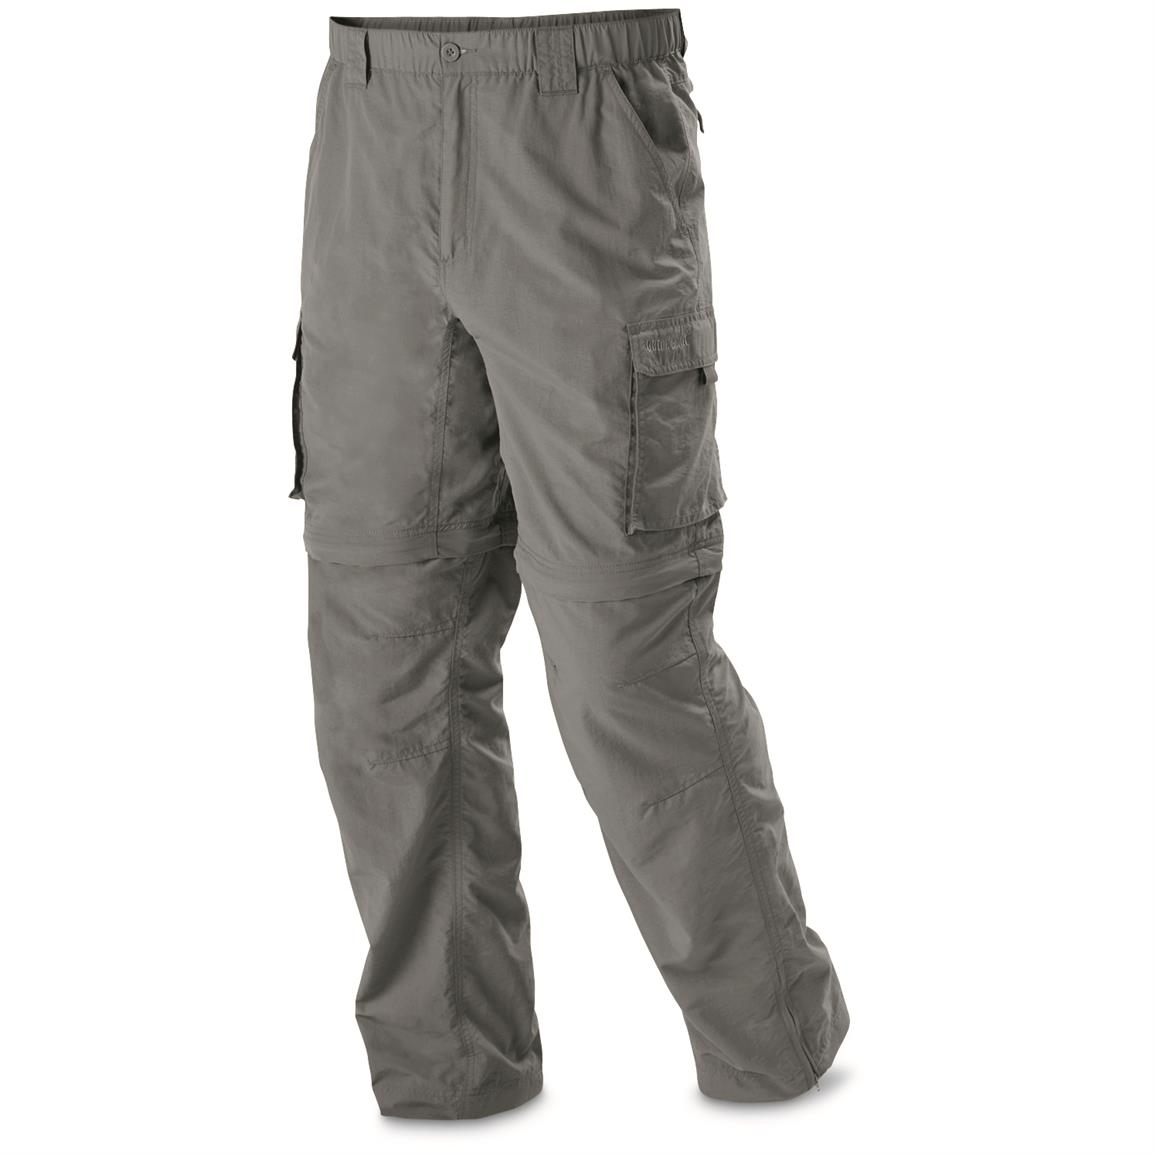 Guide Gear Men's Zip Off River Pants, Graphite Gray